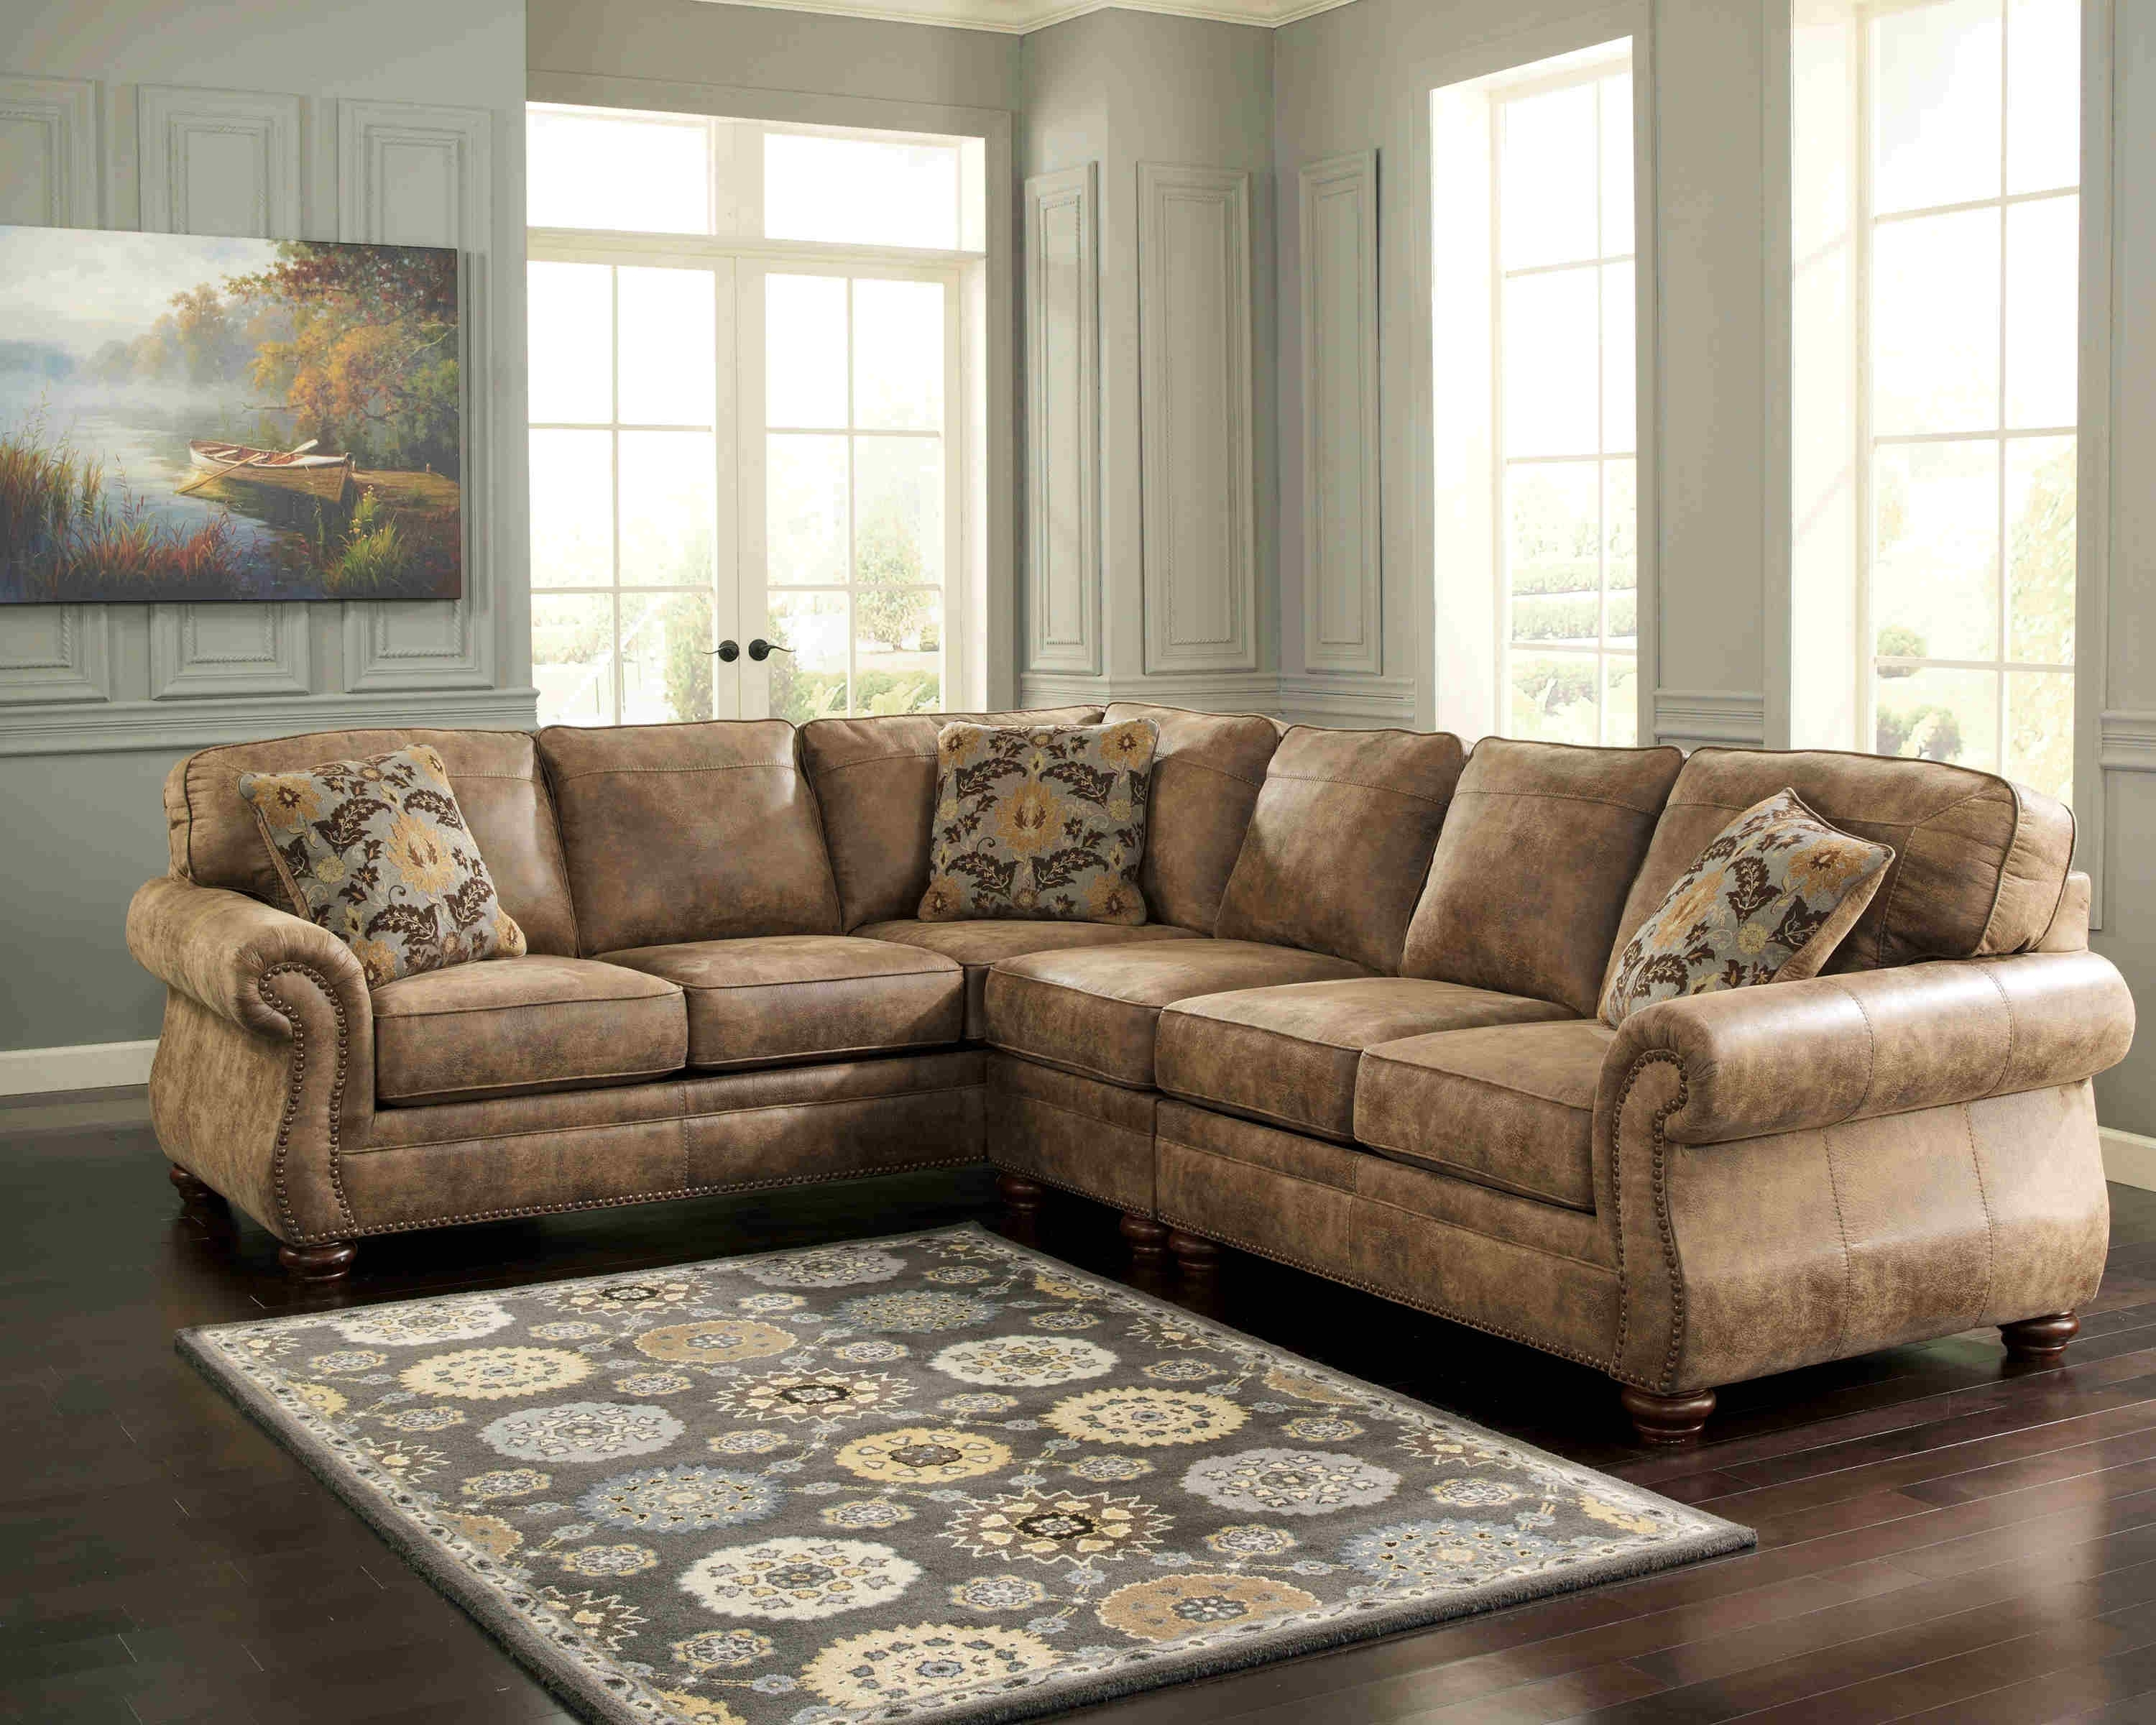 Furniture: American Freight Columbus Ohio | Sectionals Under 300 inside Sectional Sofas in Savannah Ga (Image 4 of 10)